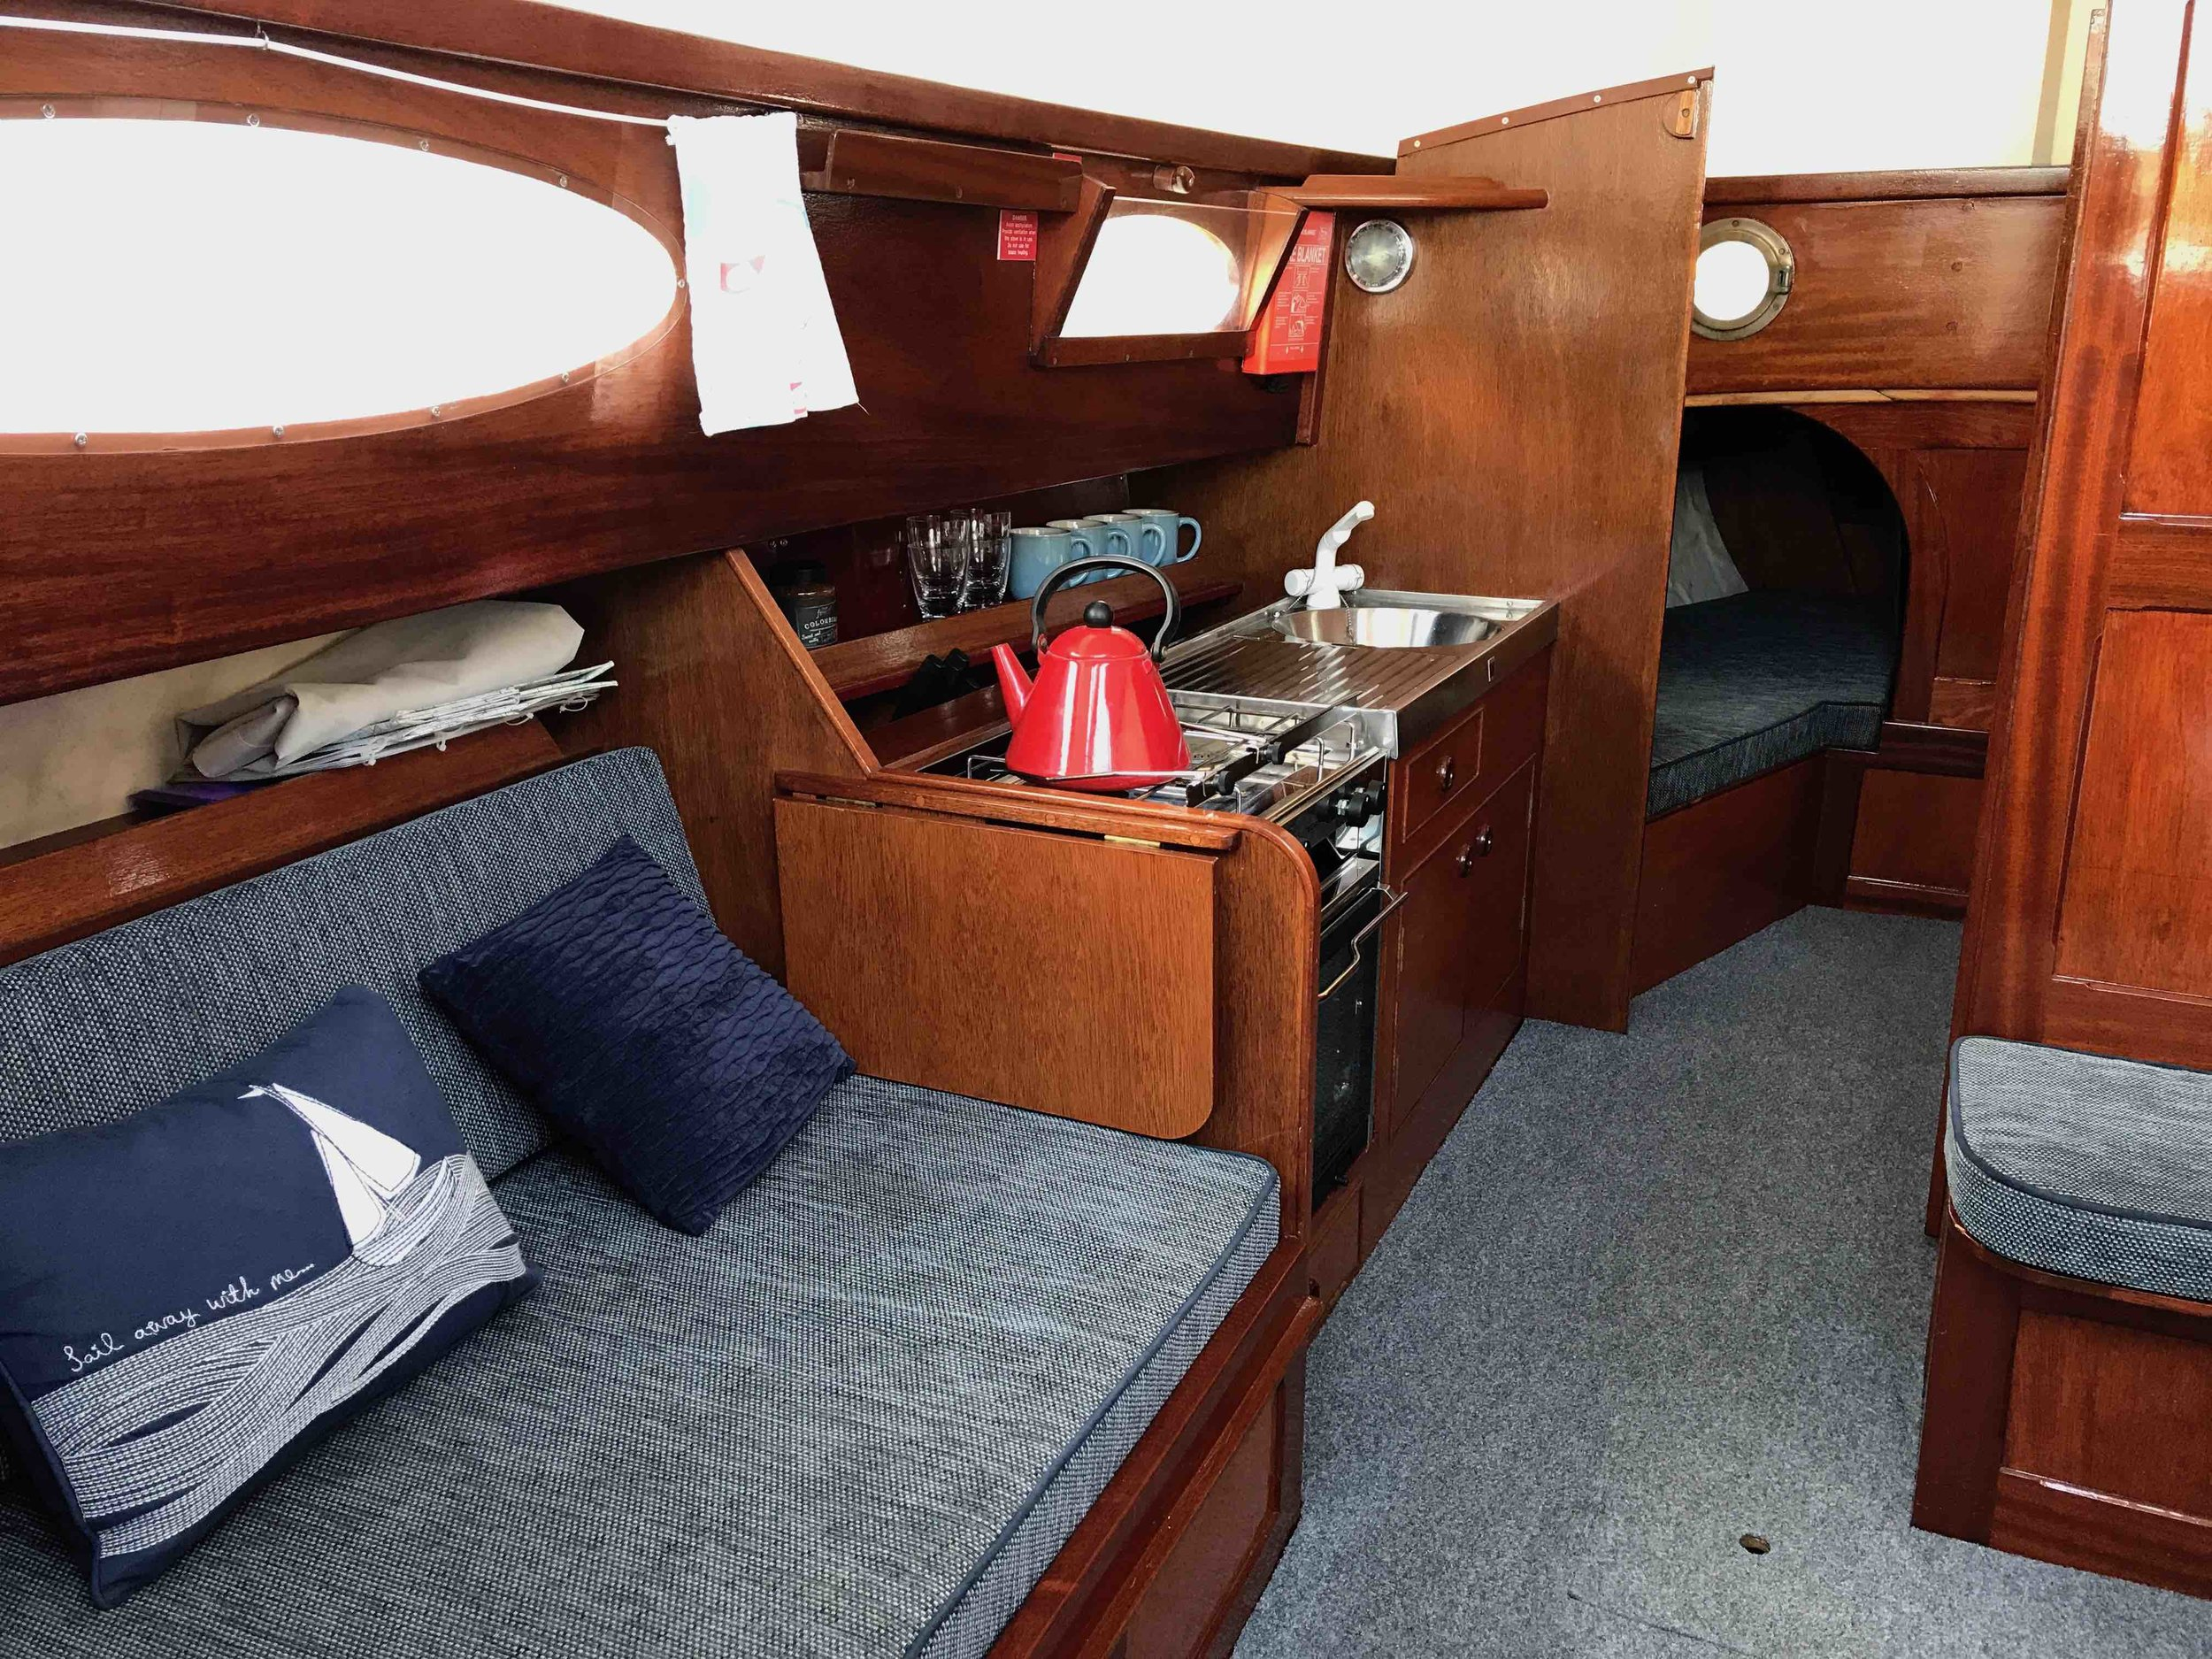 Copy of Interior of a traditional Norfolk Broads Sailing Boat